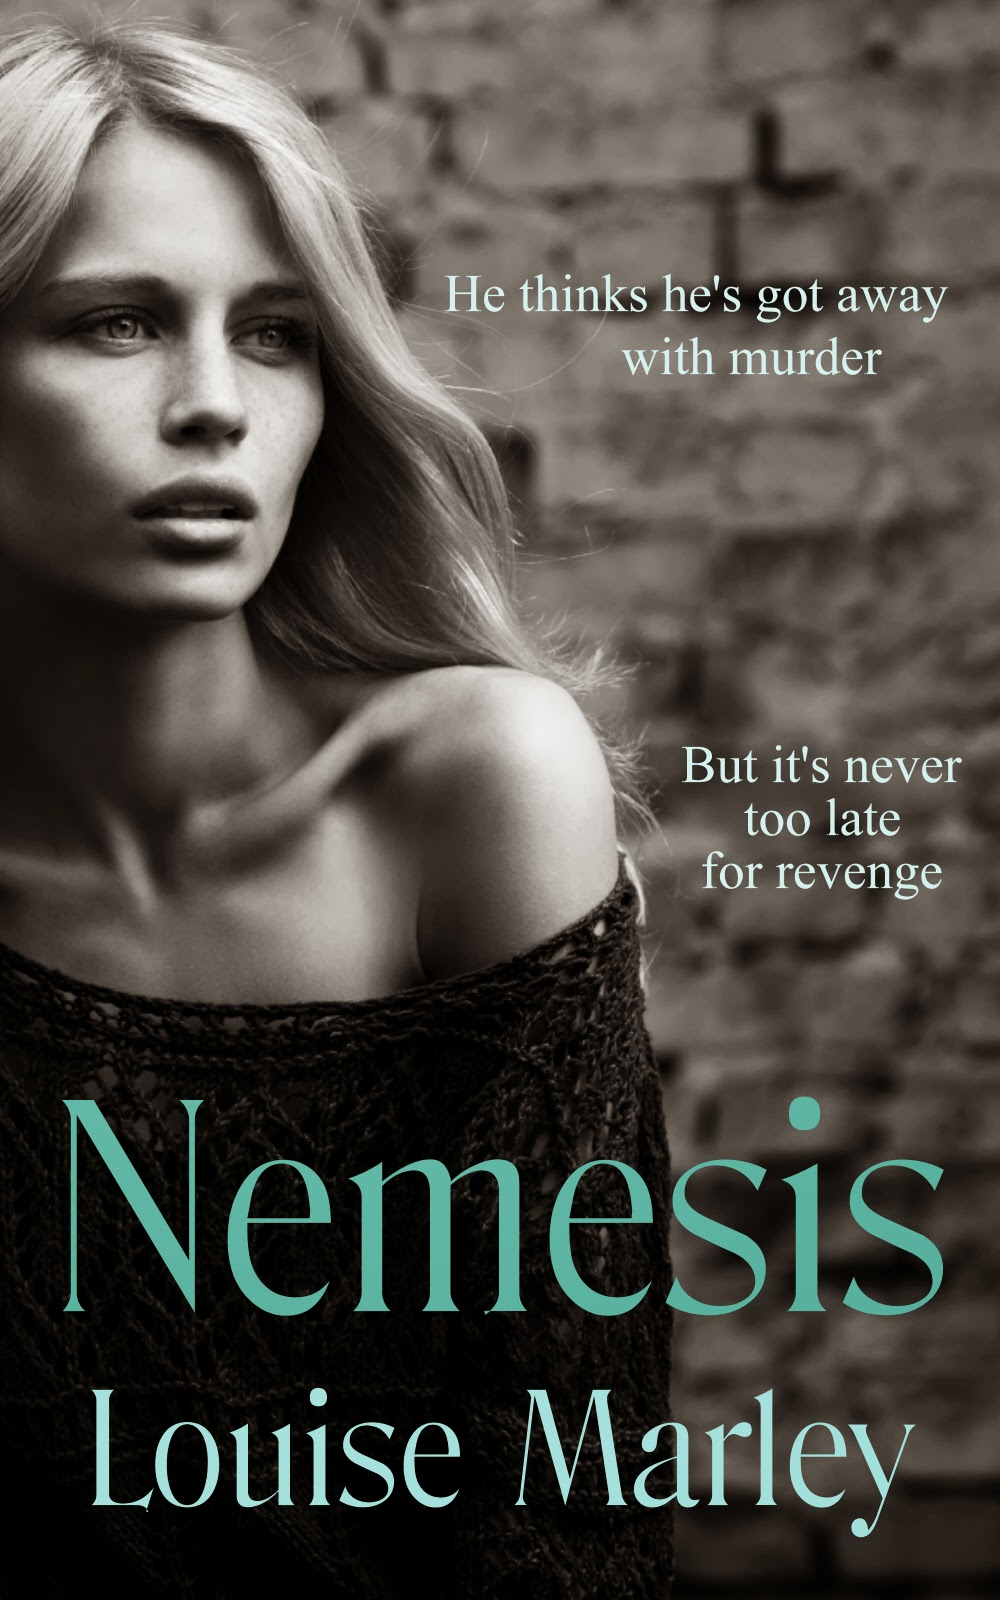 Nemesis by Louise Marley